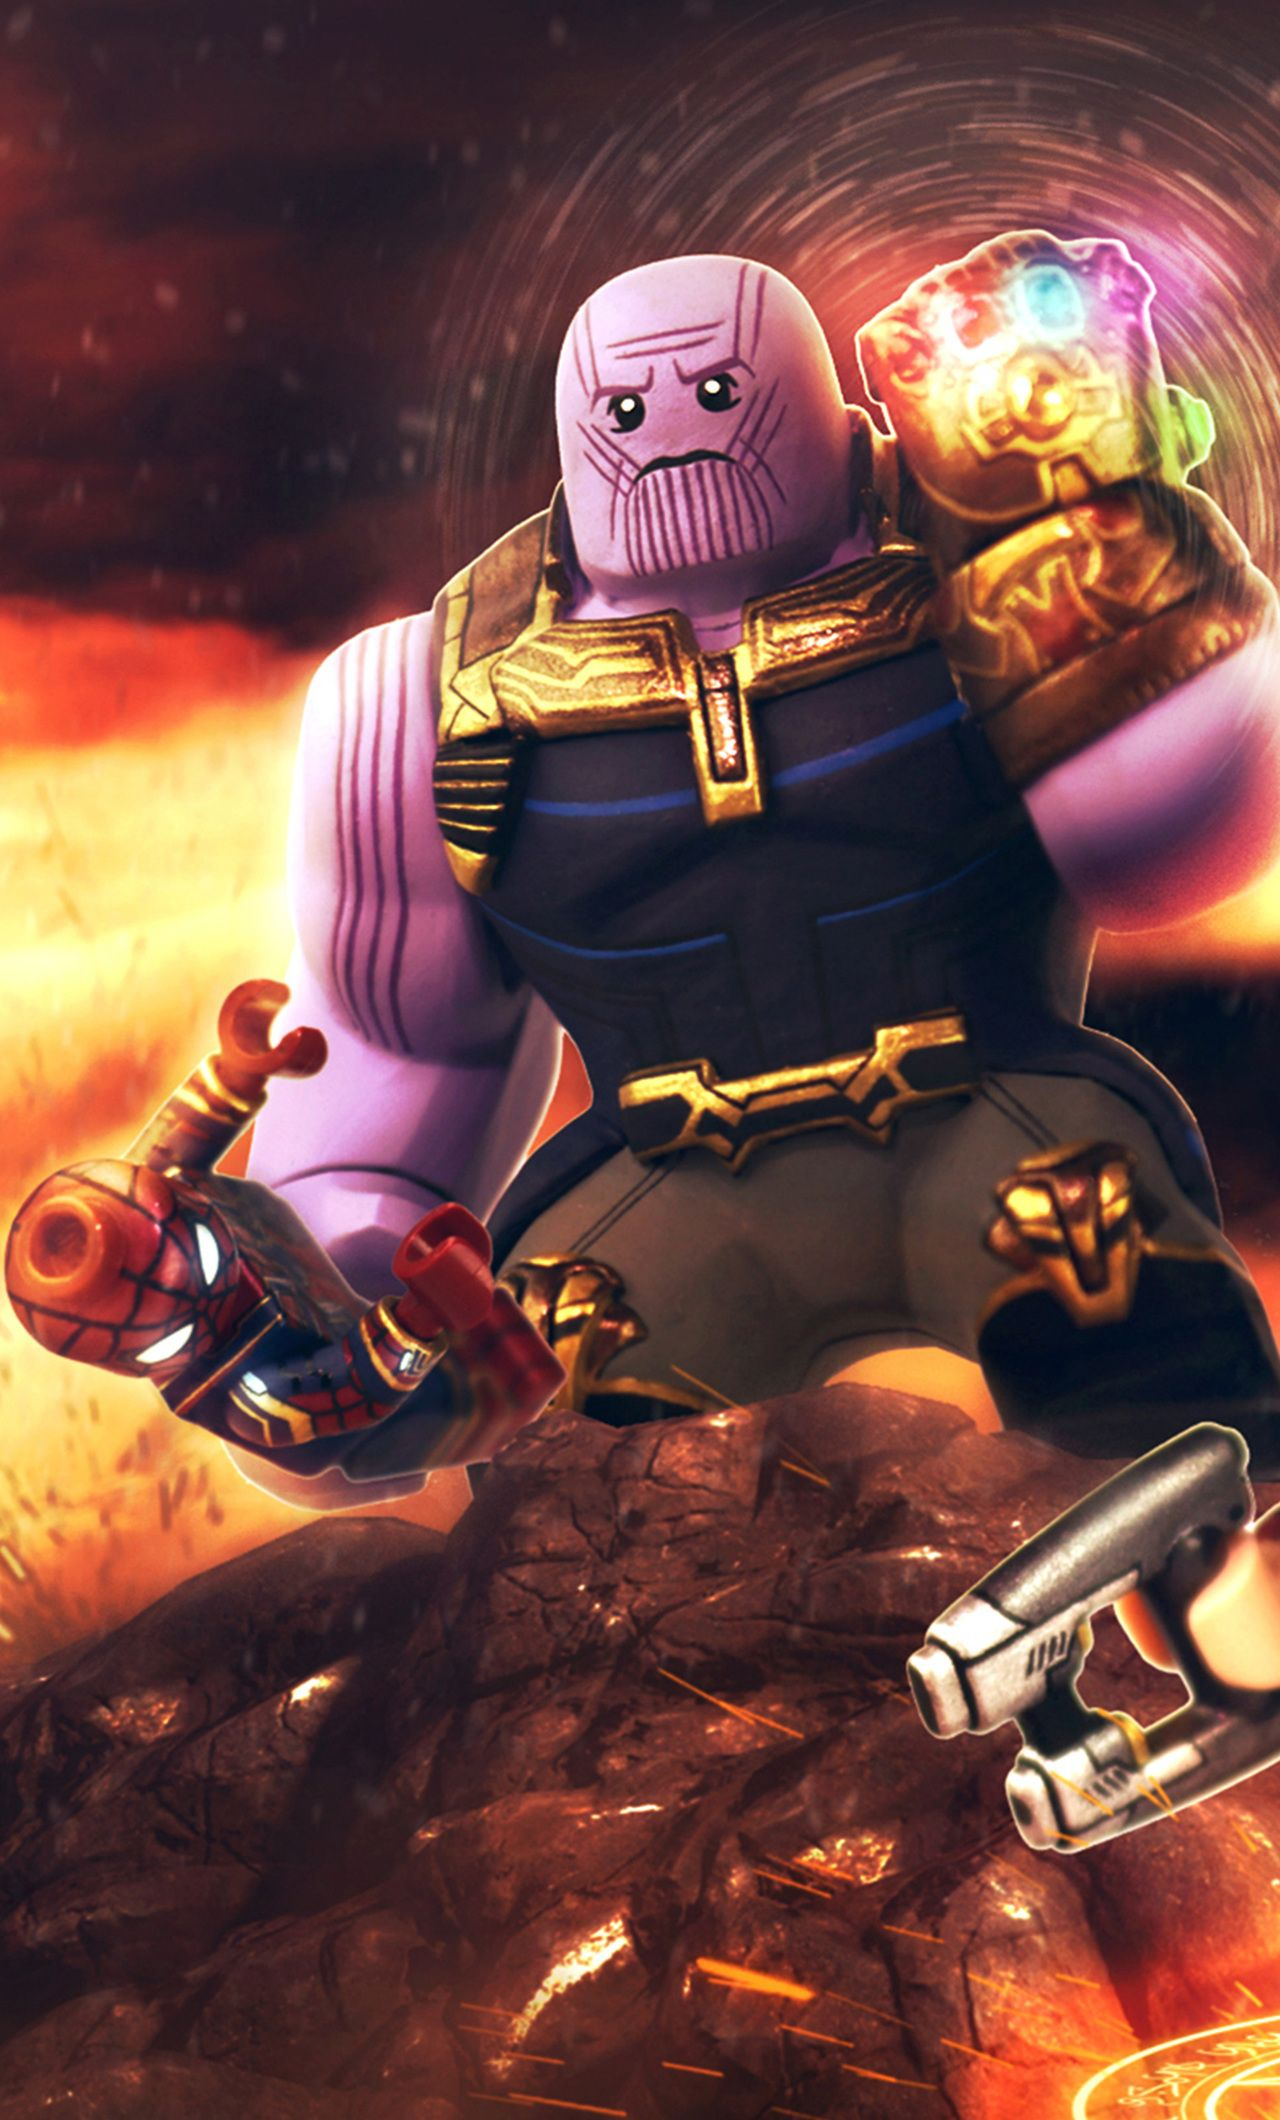 Lego Thanos Iphone Wallpapers Top Free Lego Thanos Iphone Images, Photos, Reviews